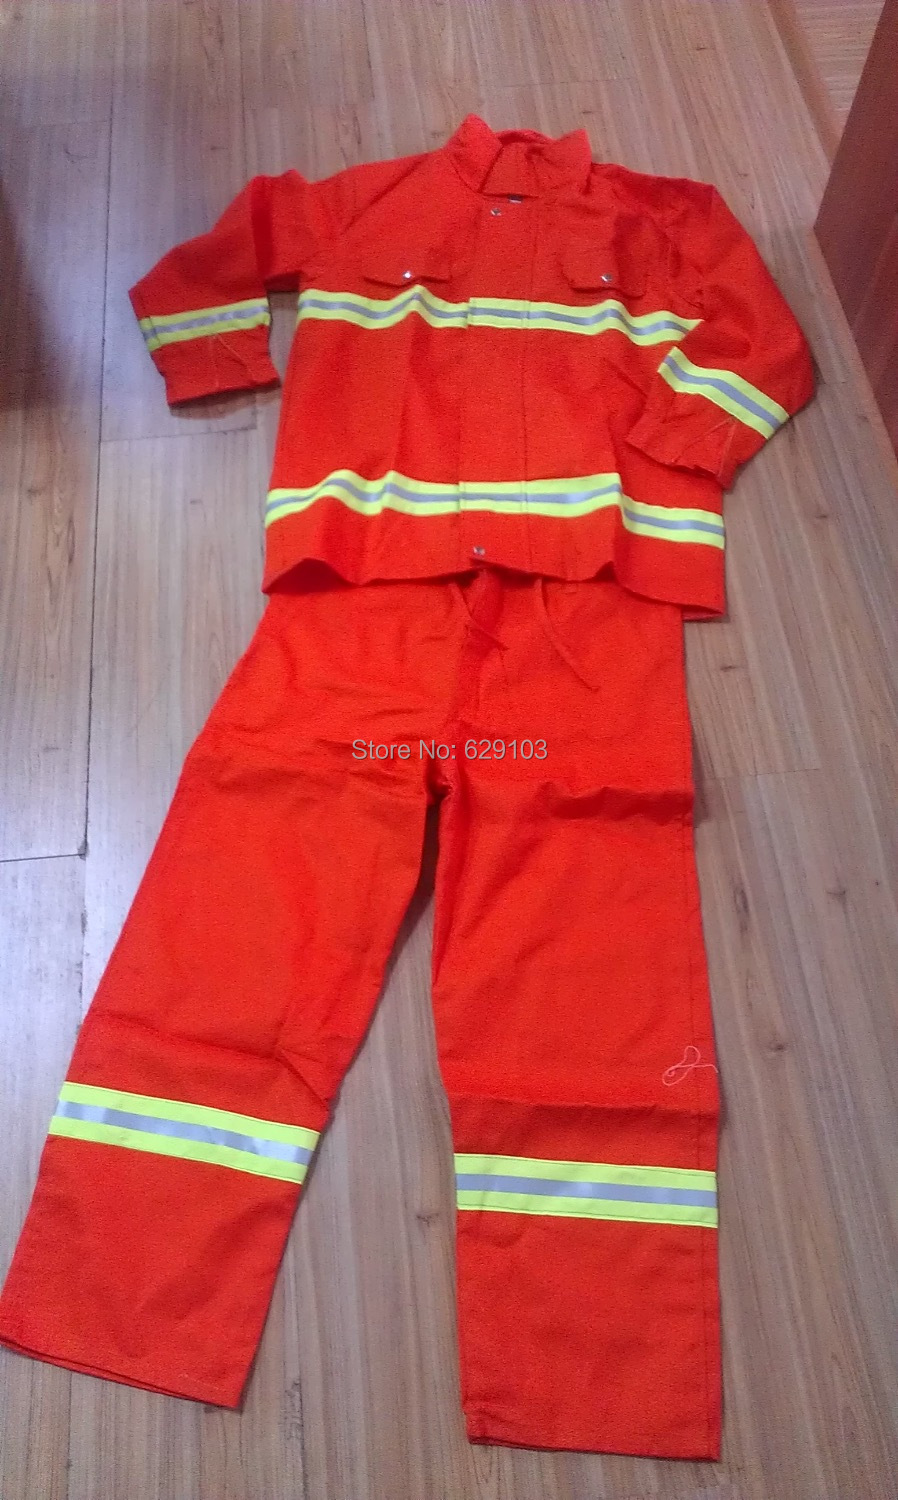 Flame retardant clothing fire resistant coverall, clothes fire suit, 97 fire fighting clothing protective clothes(China (Mainland))